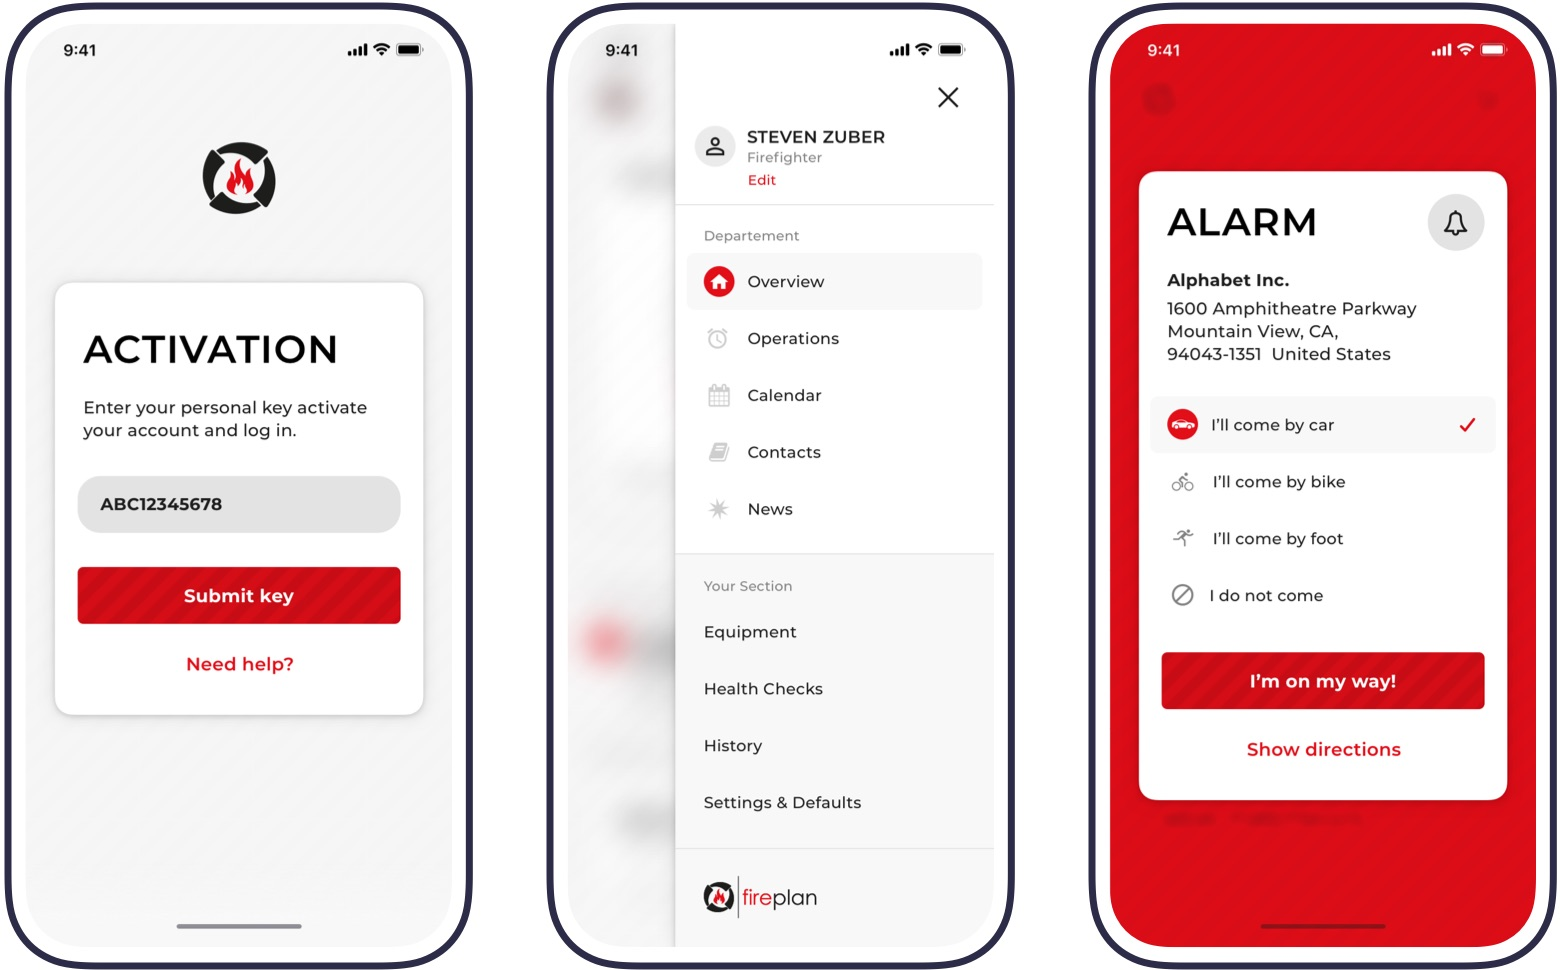 Screenshots of fireplan app: Activation key, open navigation and active alarm